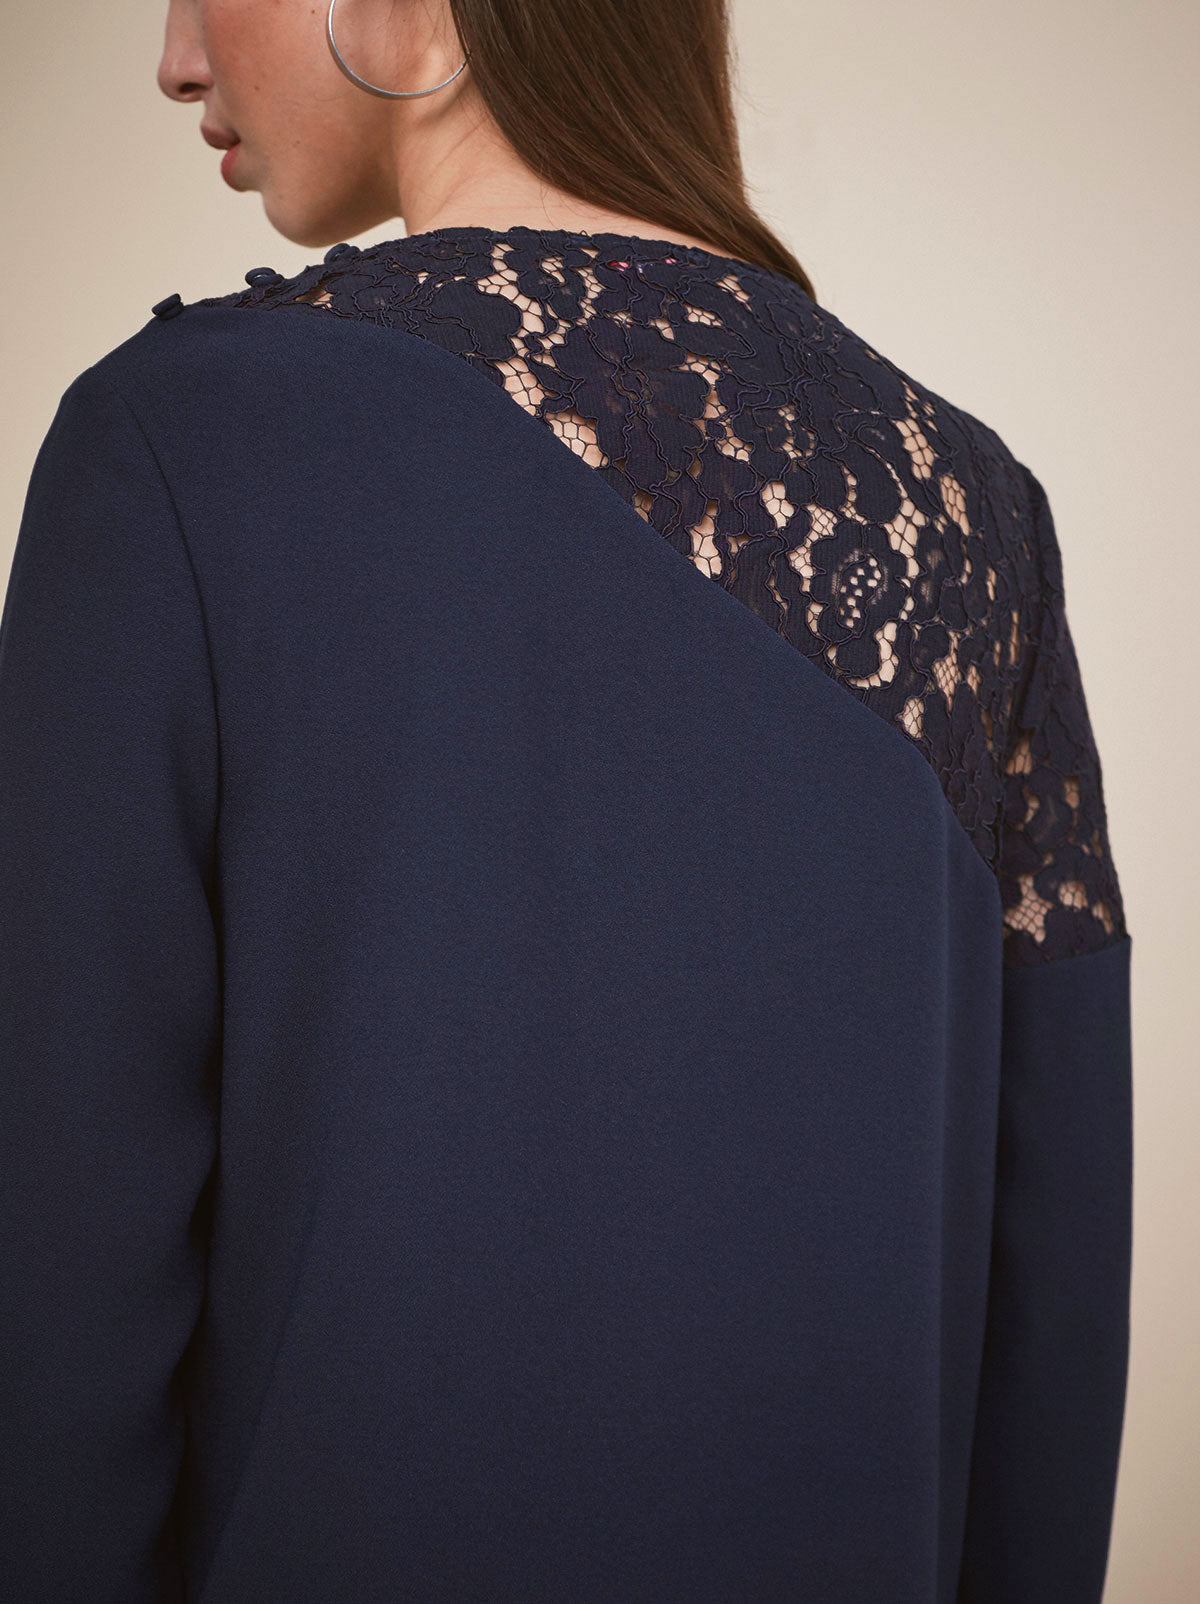 Deborah Navy Lace Top by KITRI Studio